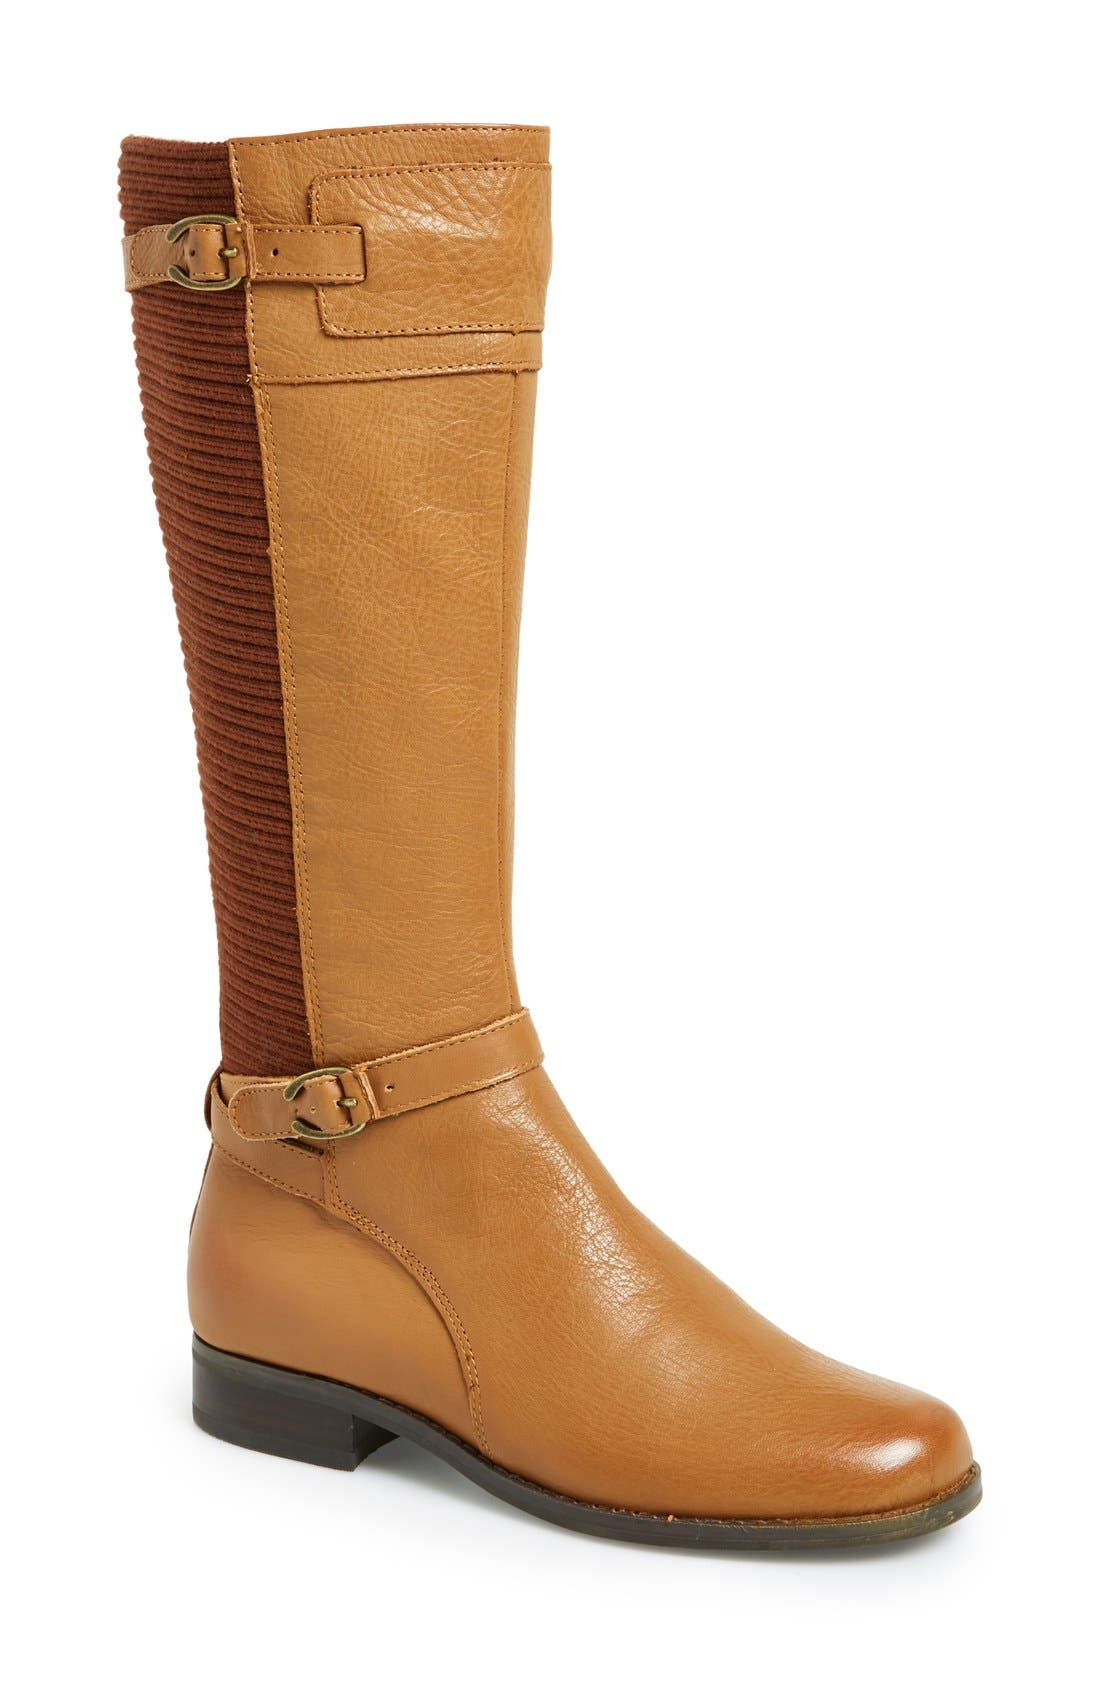 Alternate Image 1 Selected - Aetrex 'Chelsea' Riding Boot